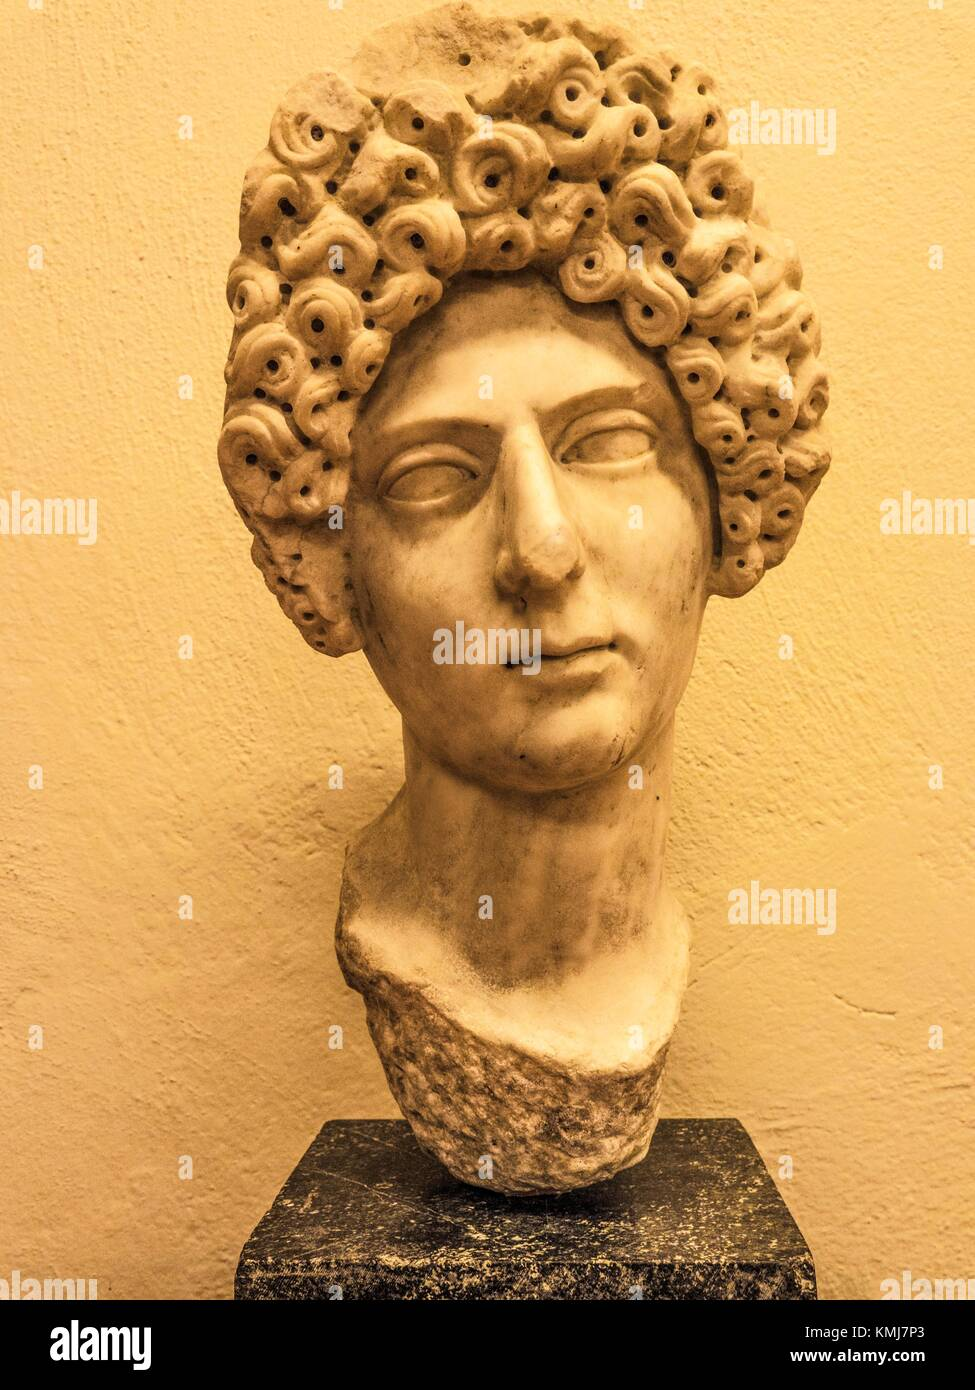 Albania, Fier- Ruins of Apollonia: head of a Roman Matron, Ic. marble. - Stock Image